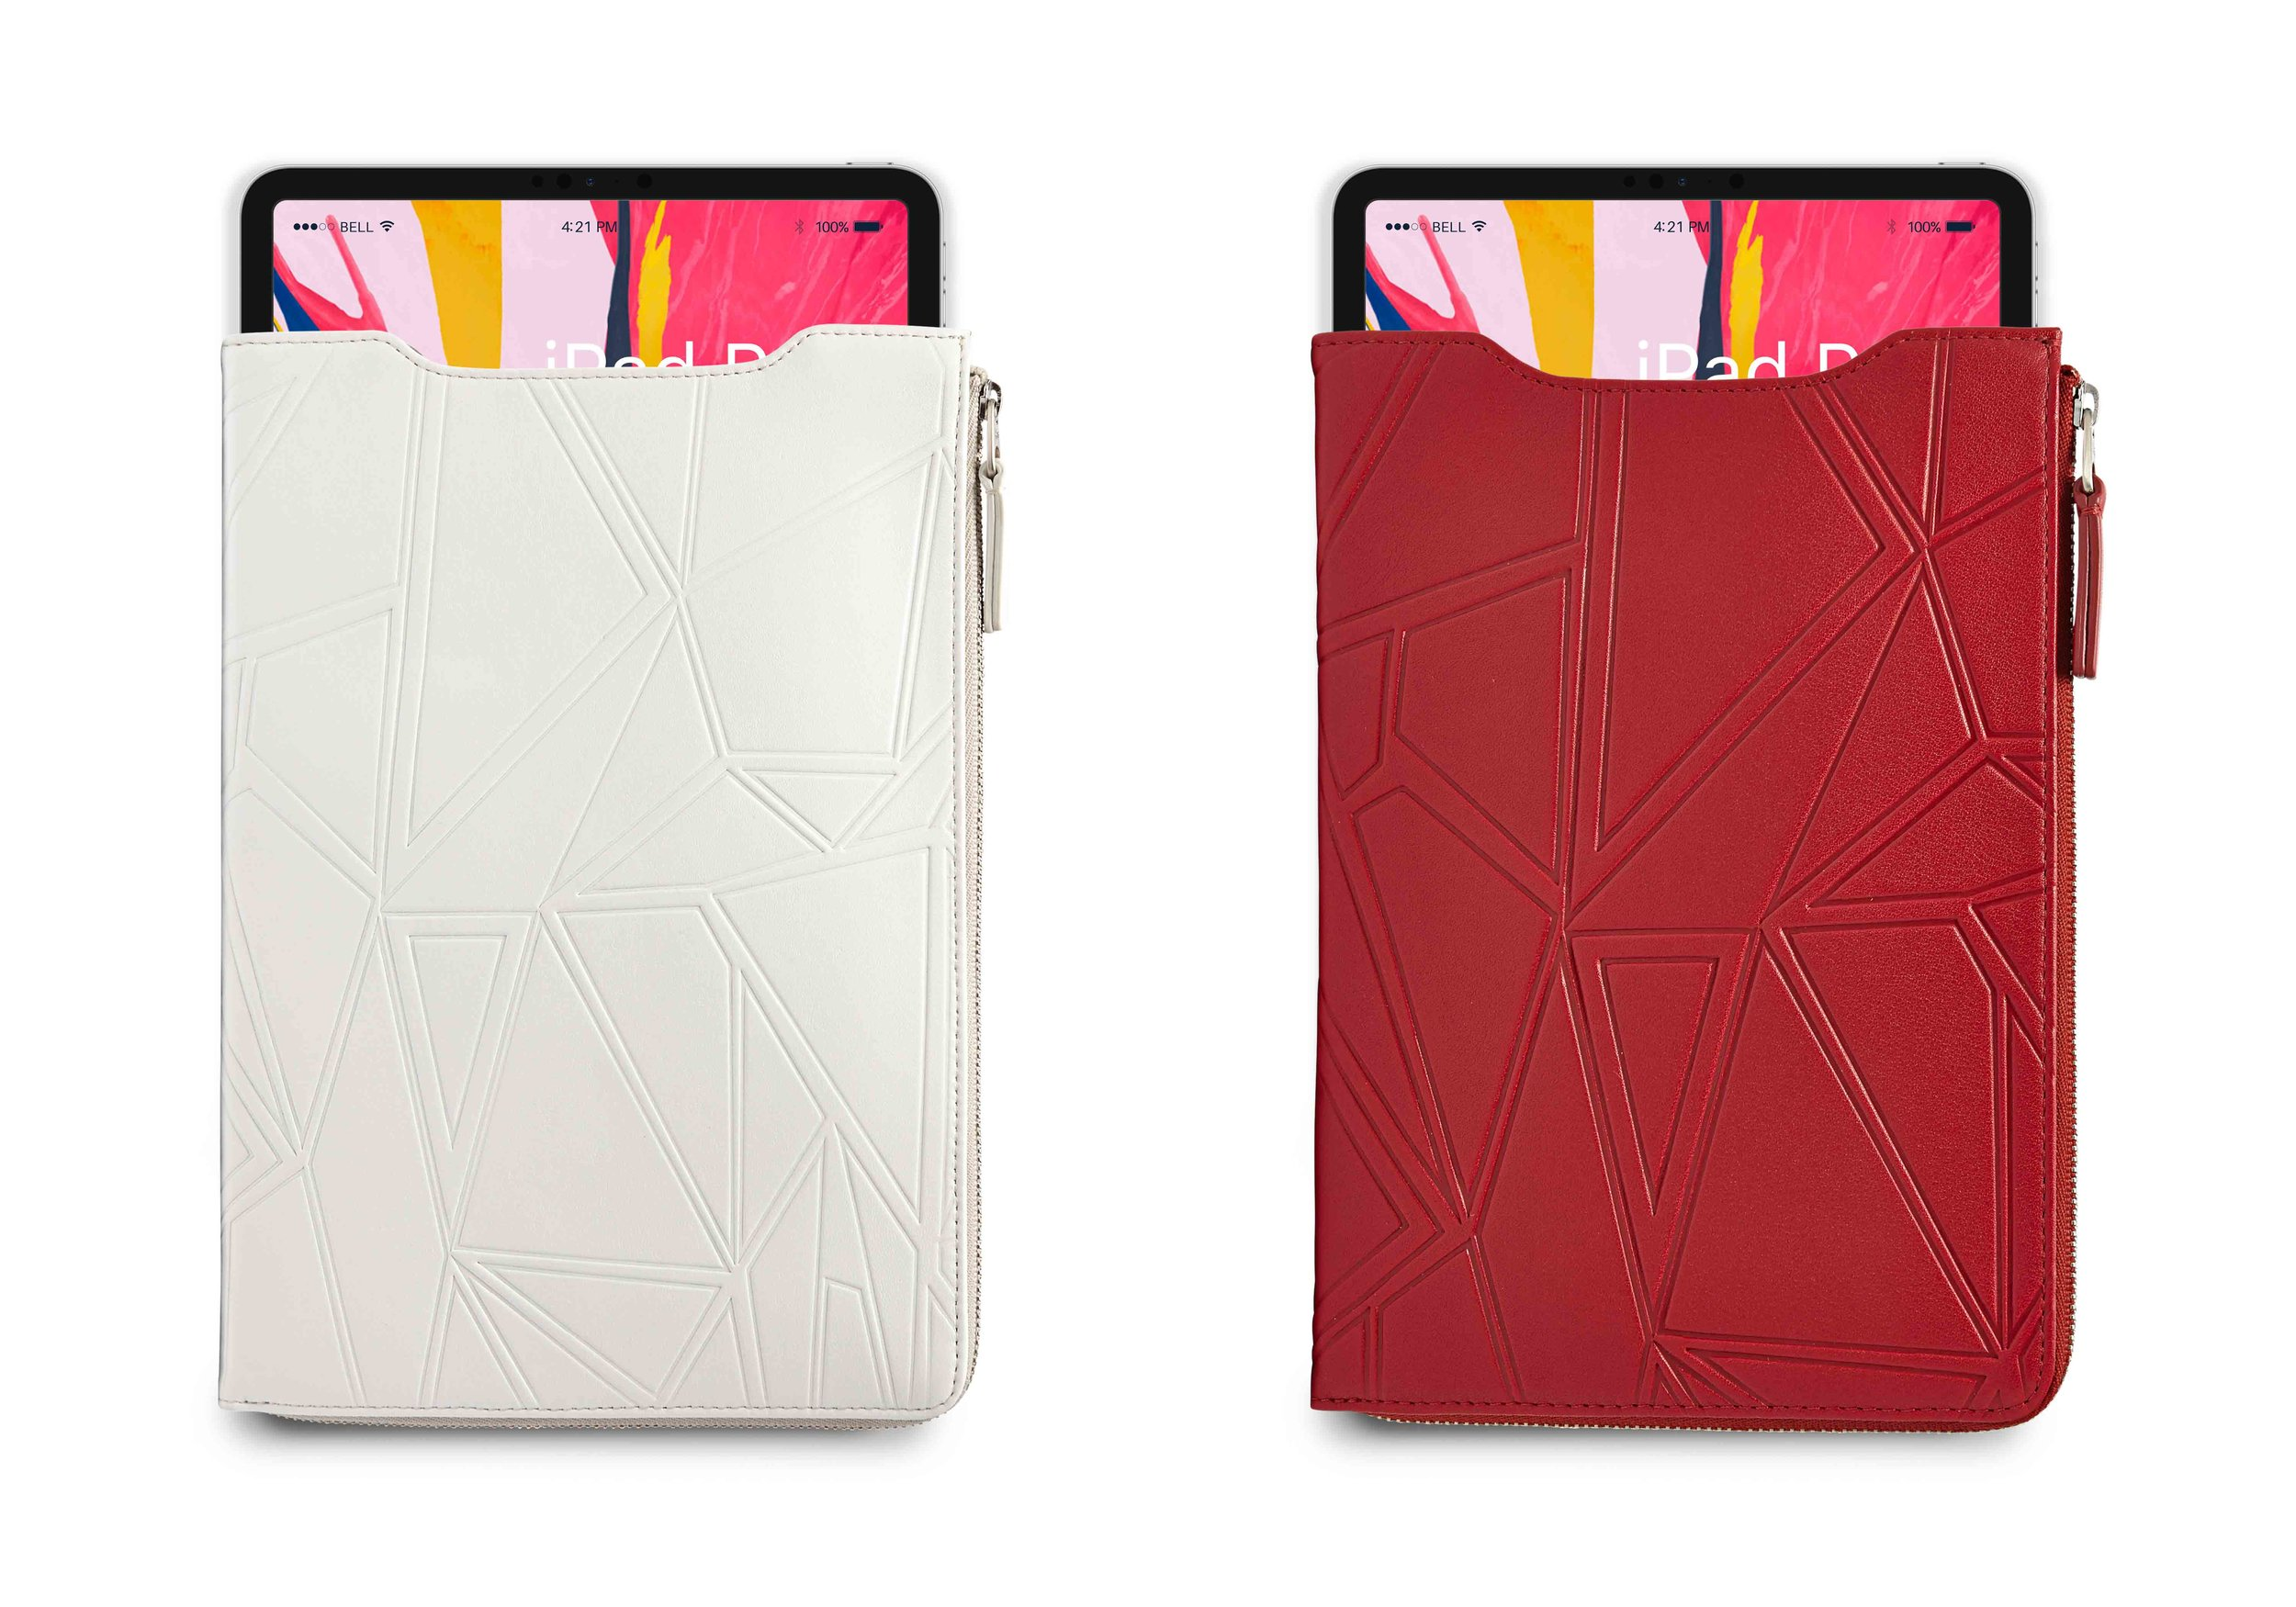 Product:    Leather iPad case with additional zip pocket storage.